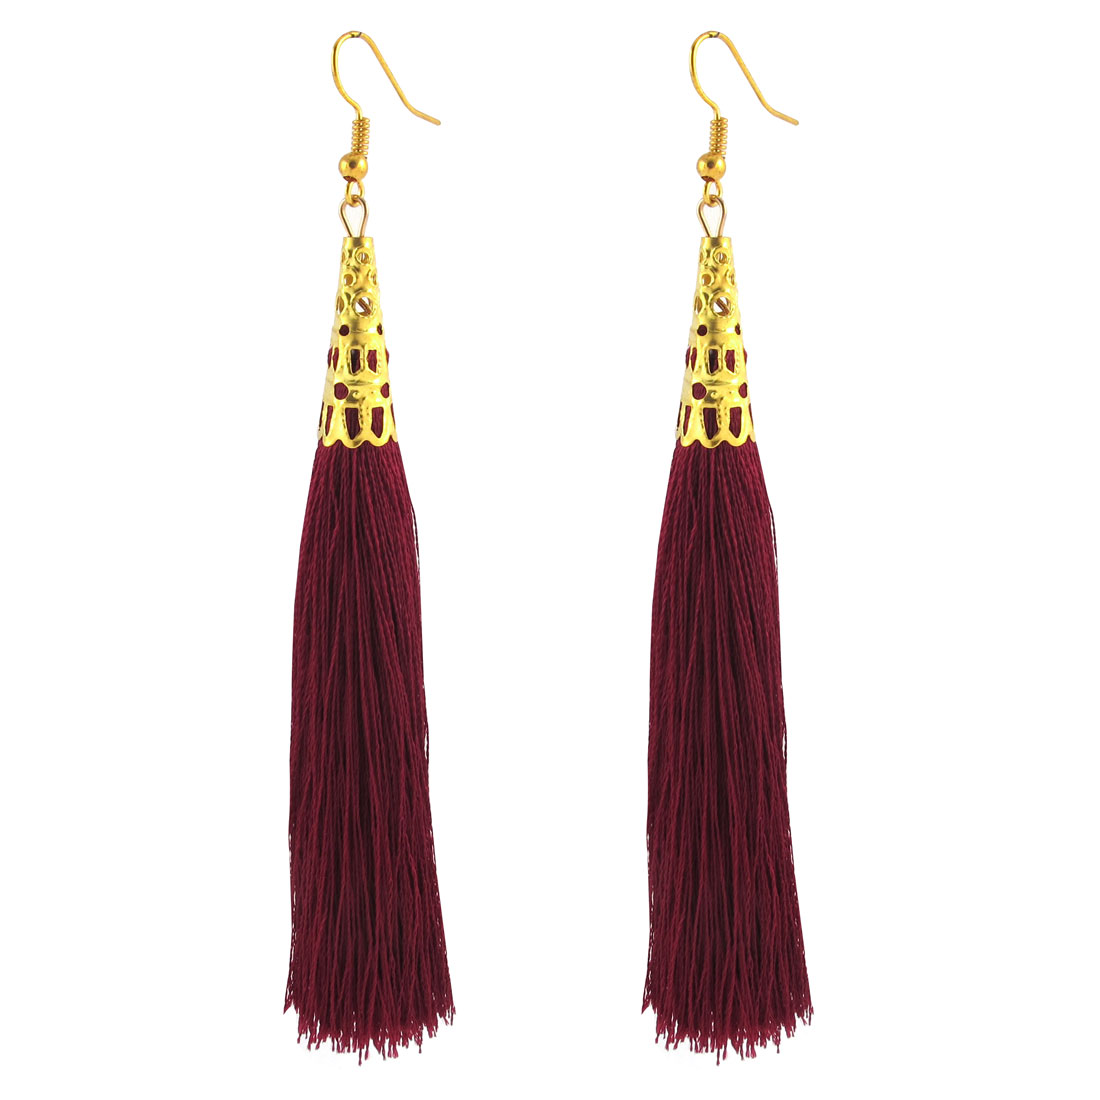 Woman Long Tassel Dangle Fish Hook Earrings Ear Charm Decor Pair Burgundy